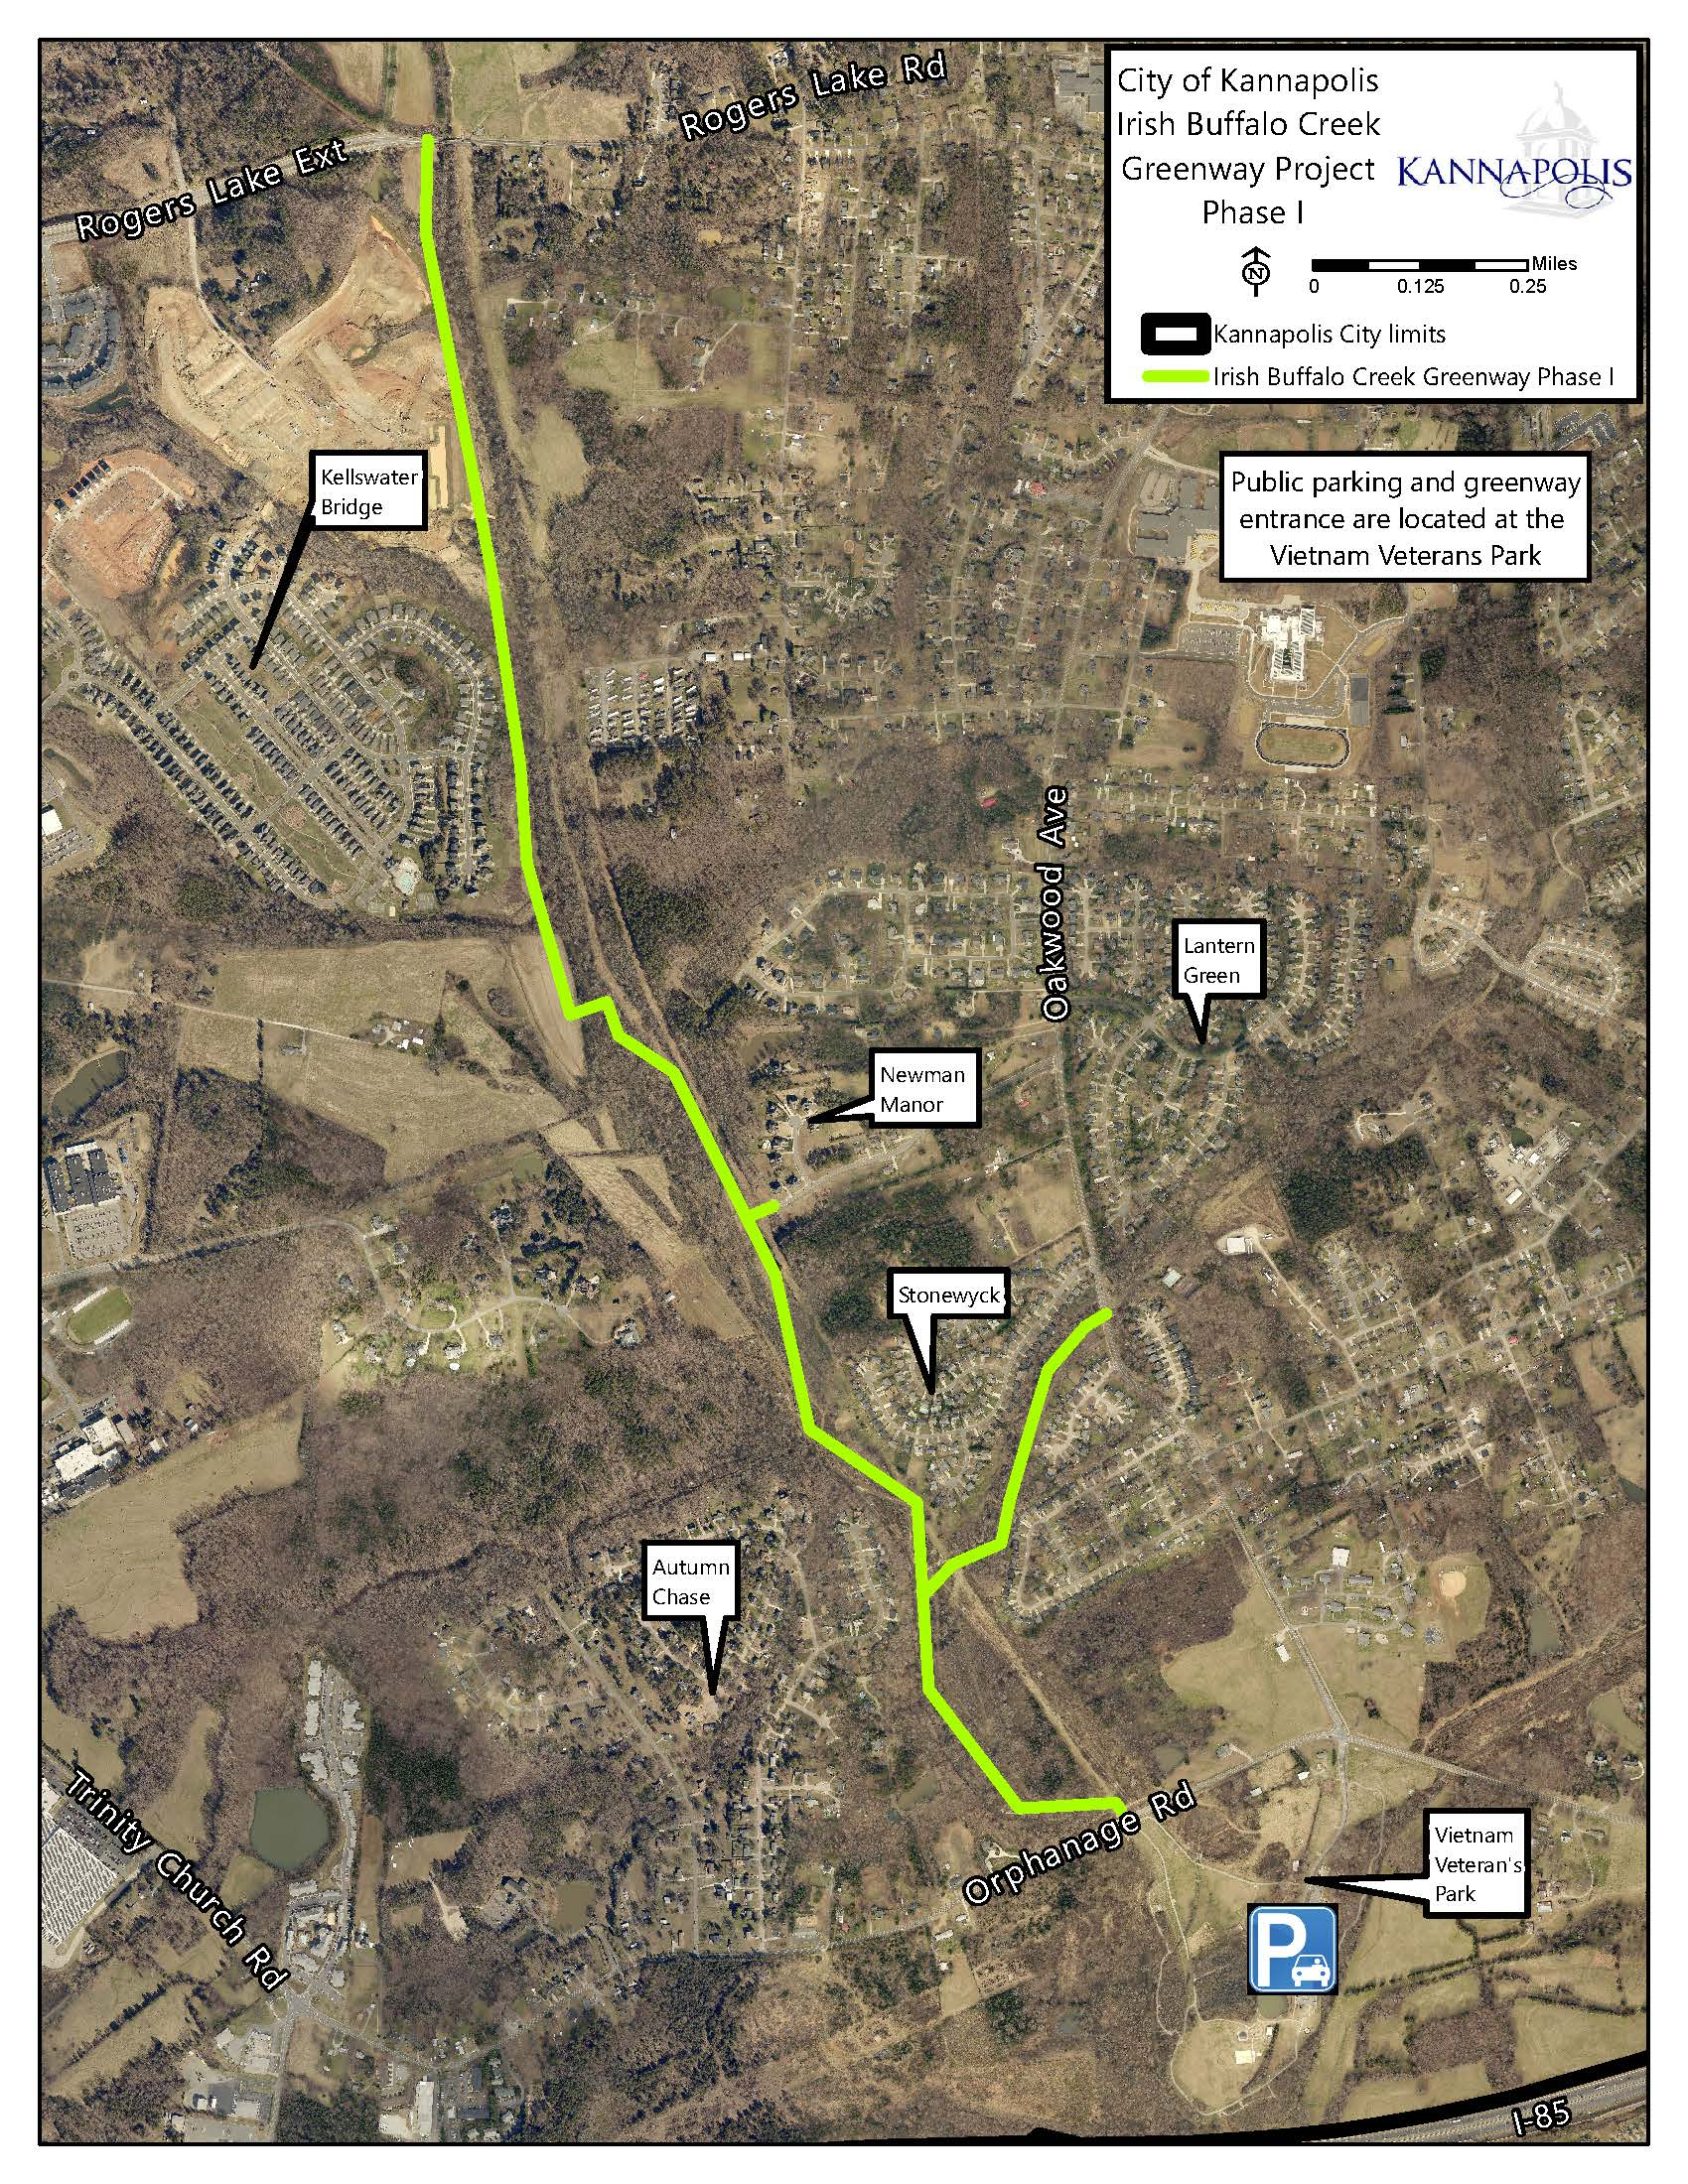 Irish Buffalo Creek Greenway Map - Phase 1